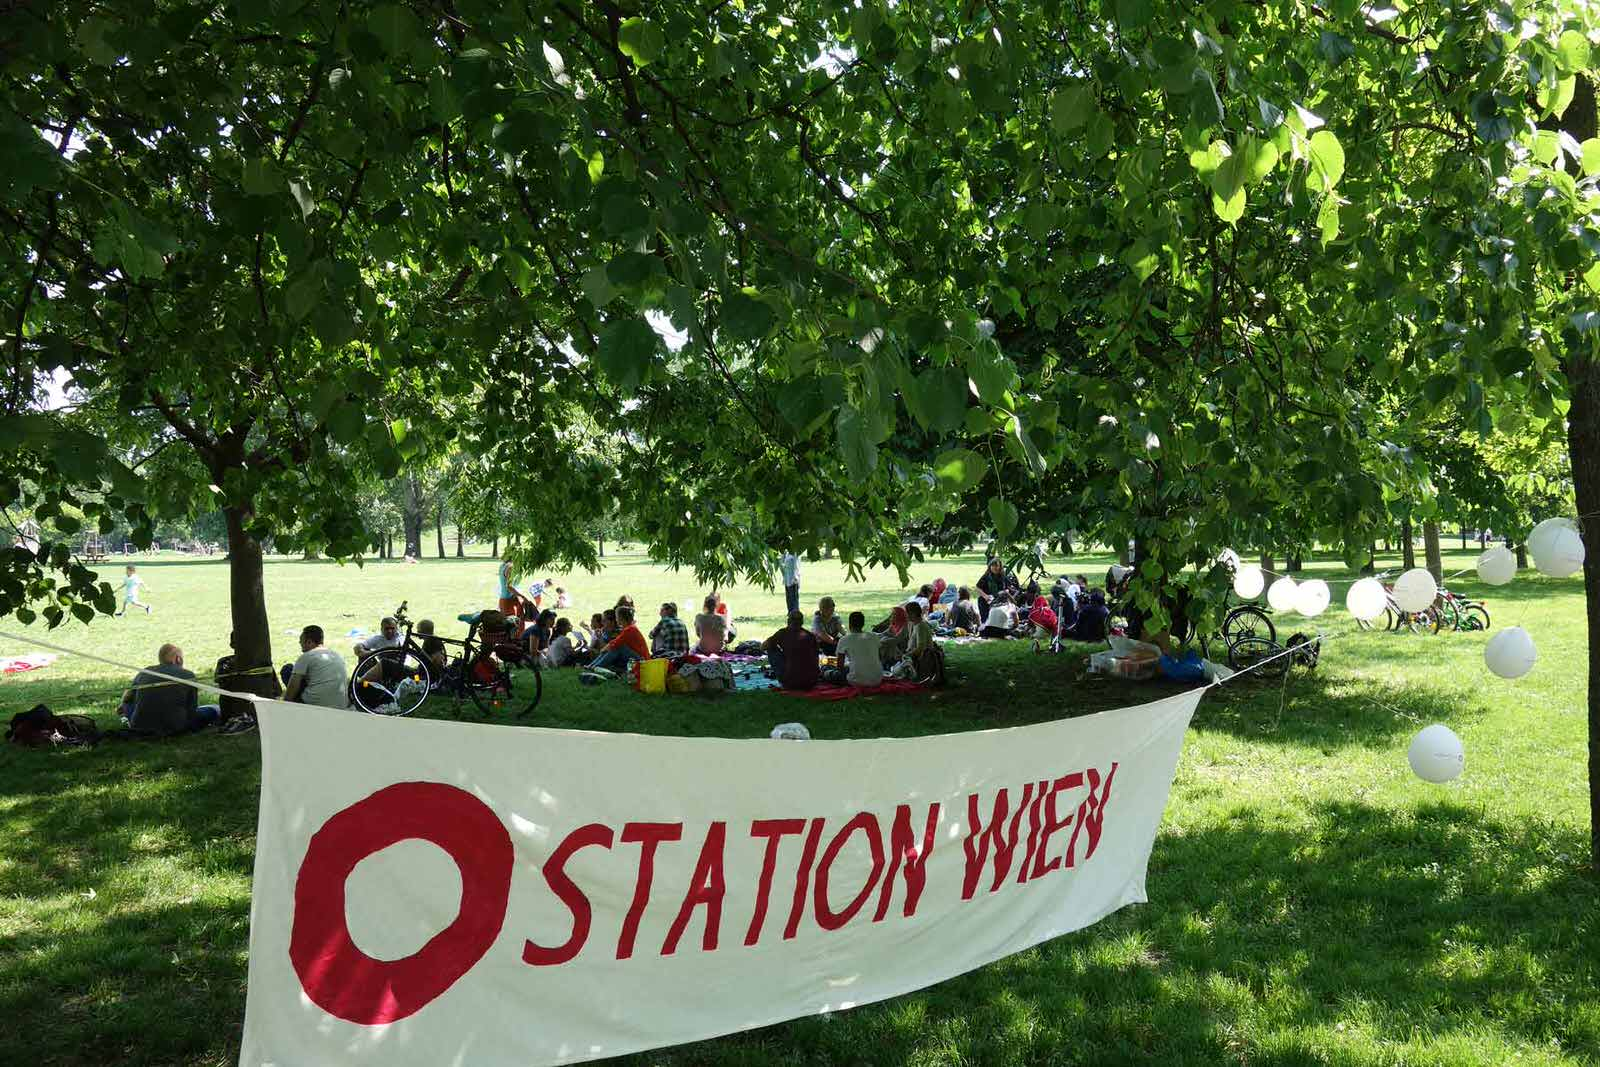 Station Wien_Picknick 2017